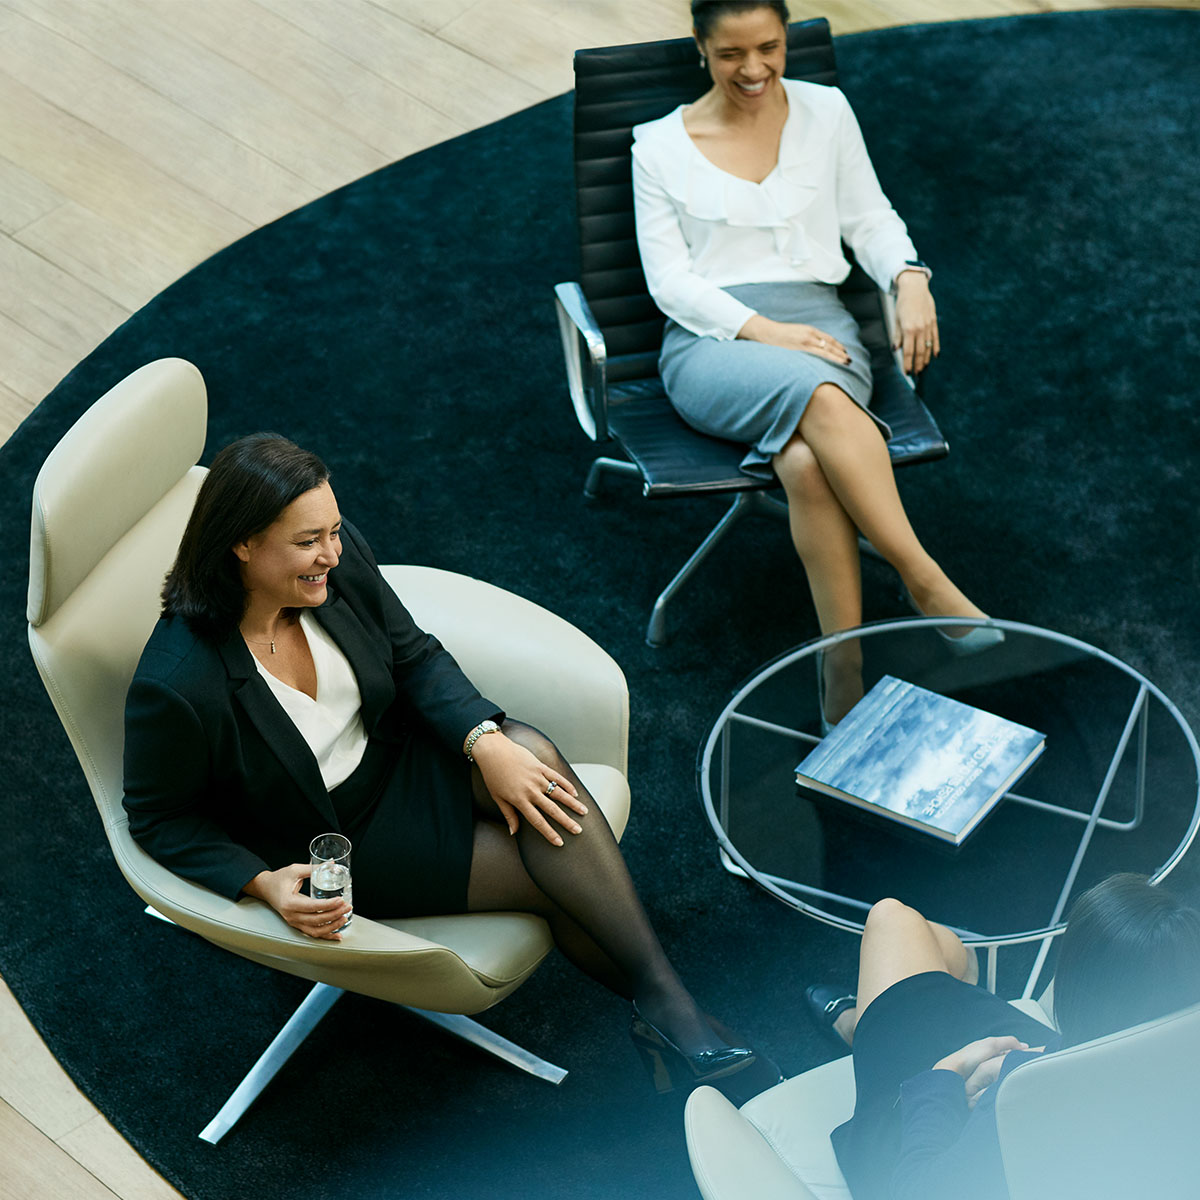 A birds eye shot of 3 business woman sitting at a small black round coffee table. Macquarie - Sherise Bianca